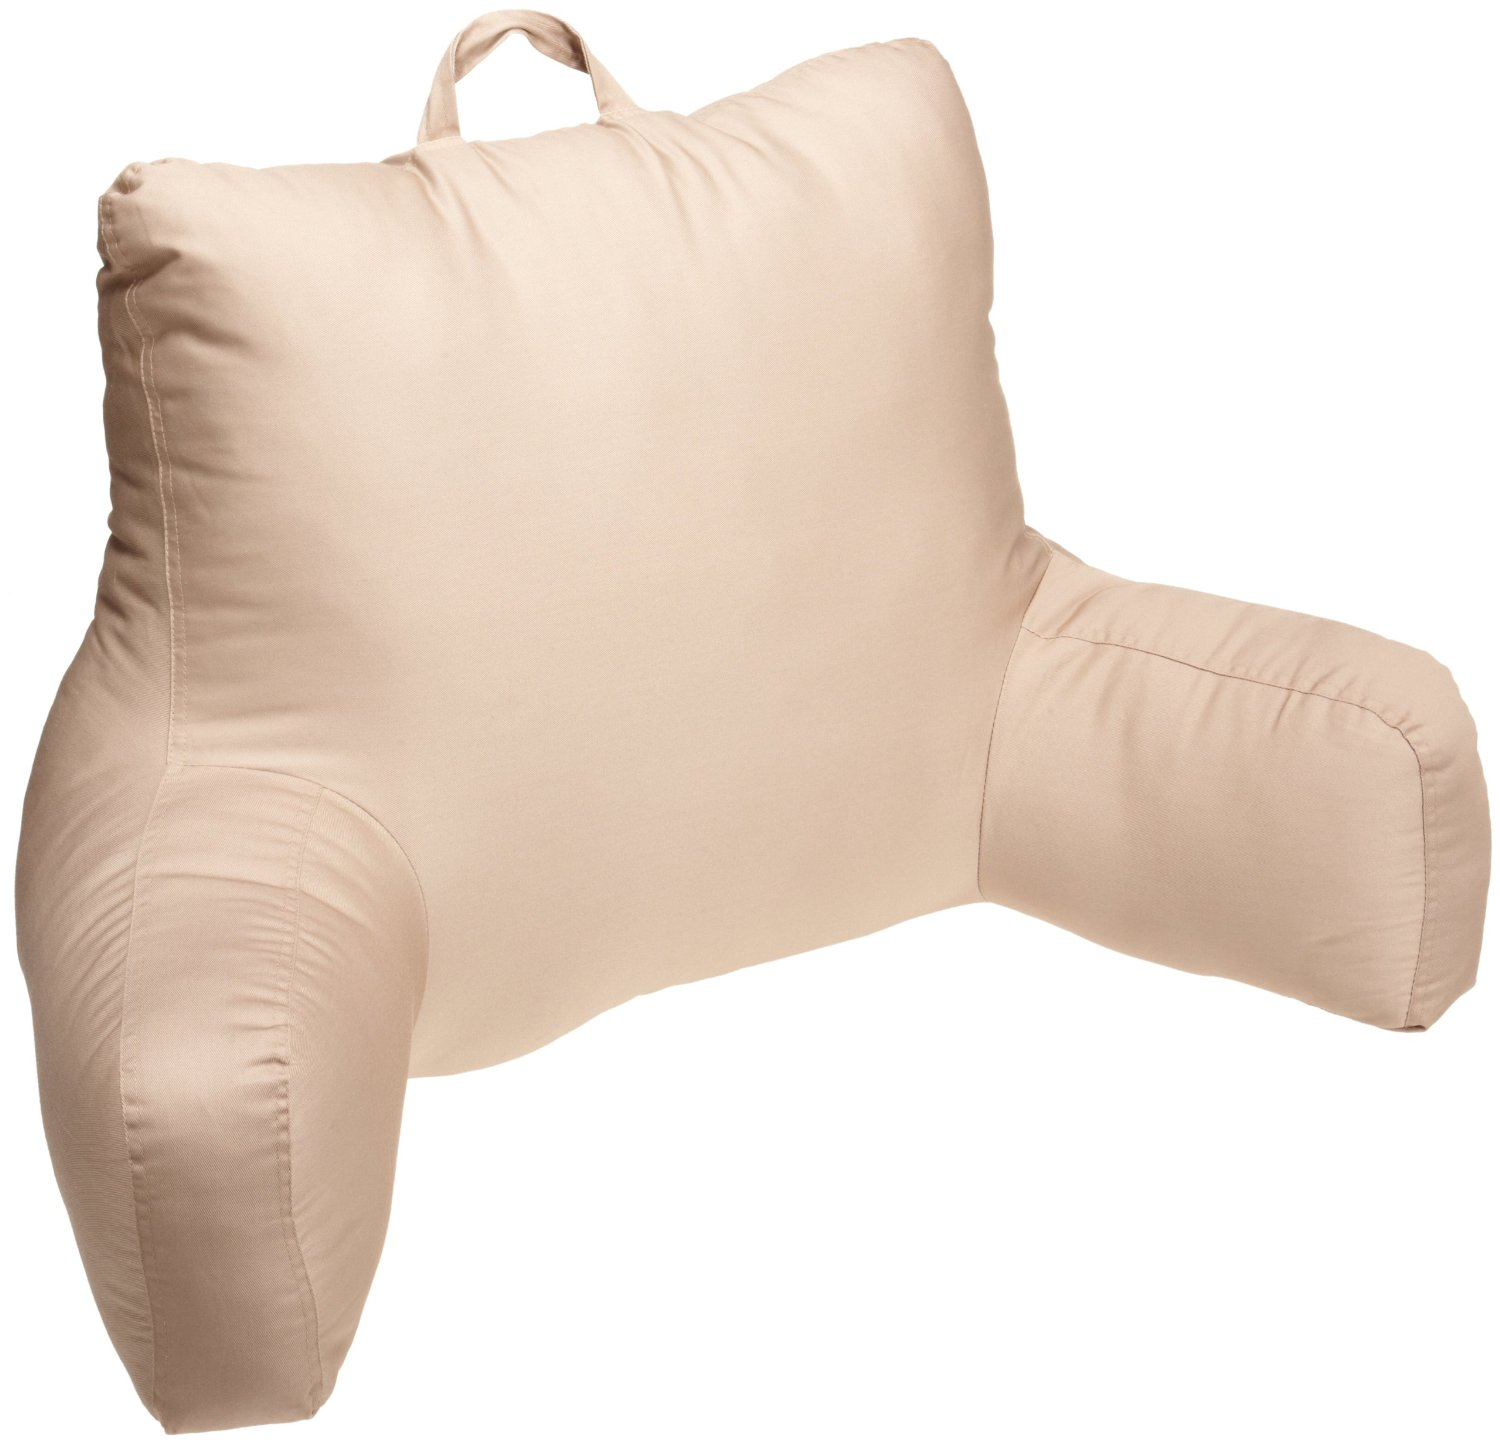 Sit Up Pillow – Innovative Stuff that You Must Have   HomesFeed